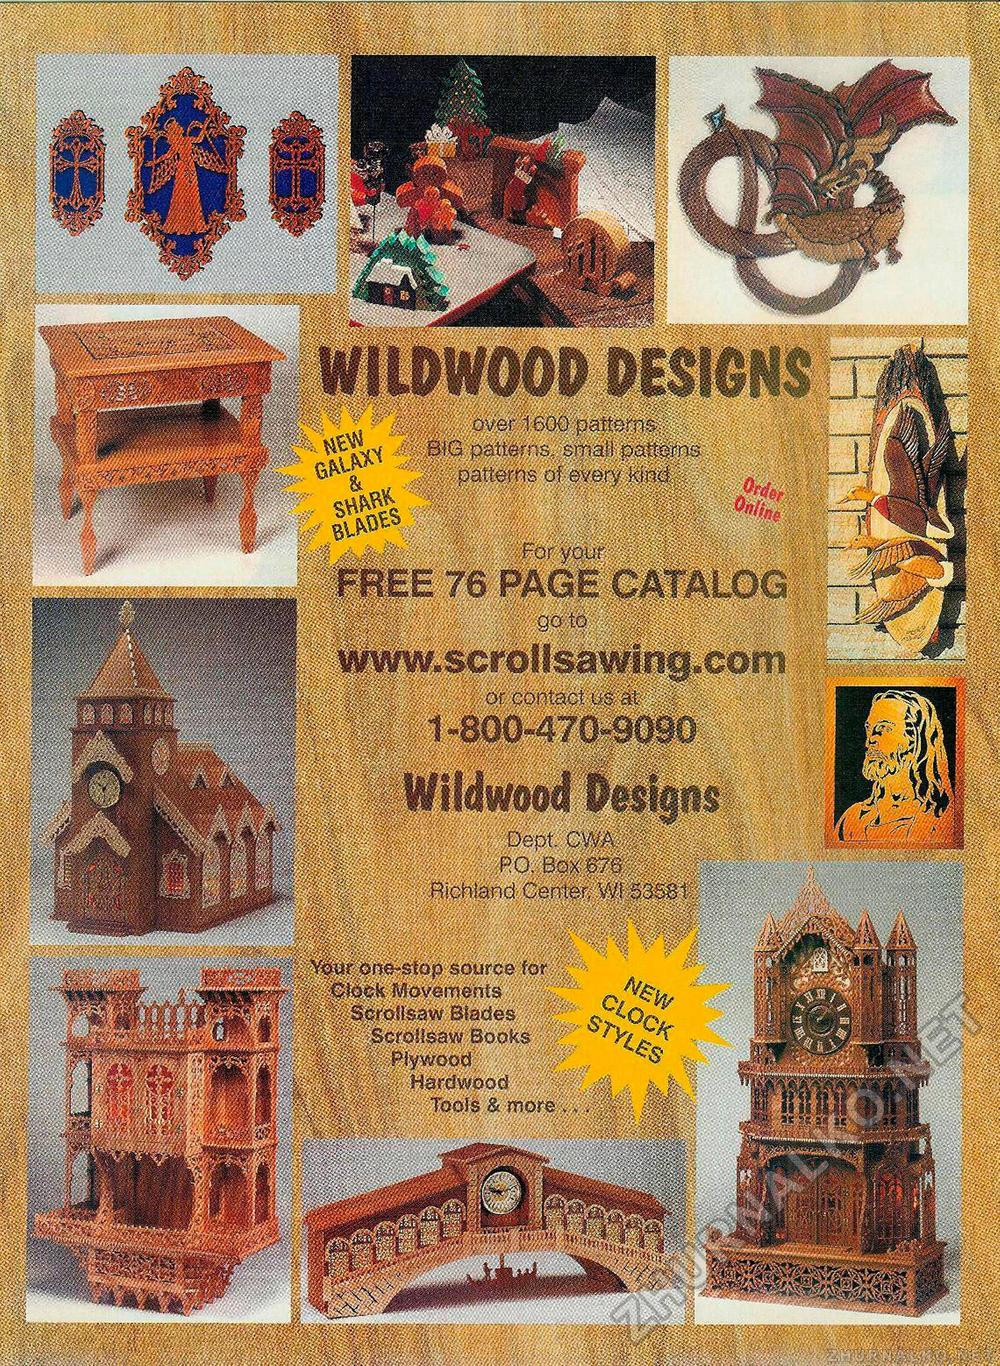 Creative Woodworks & crafts 2001-01, страница 21